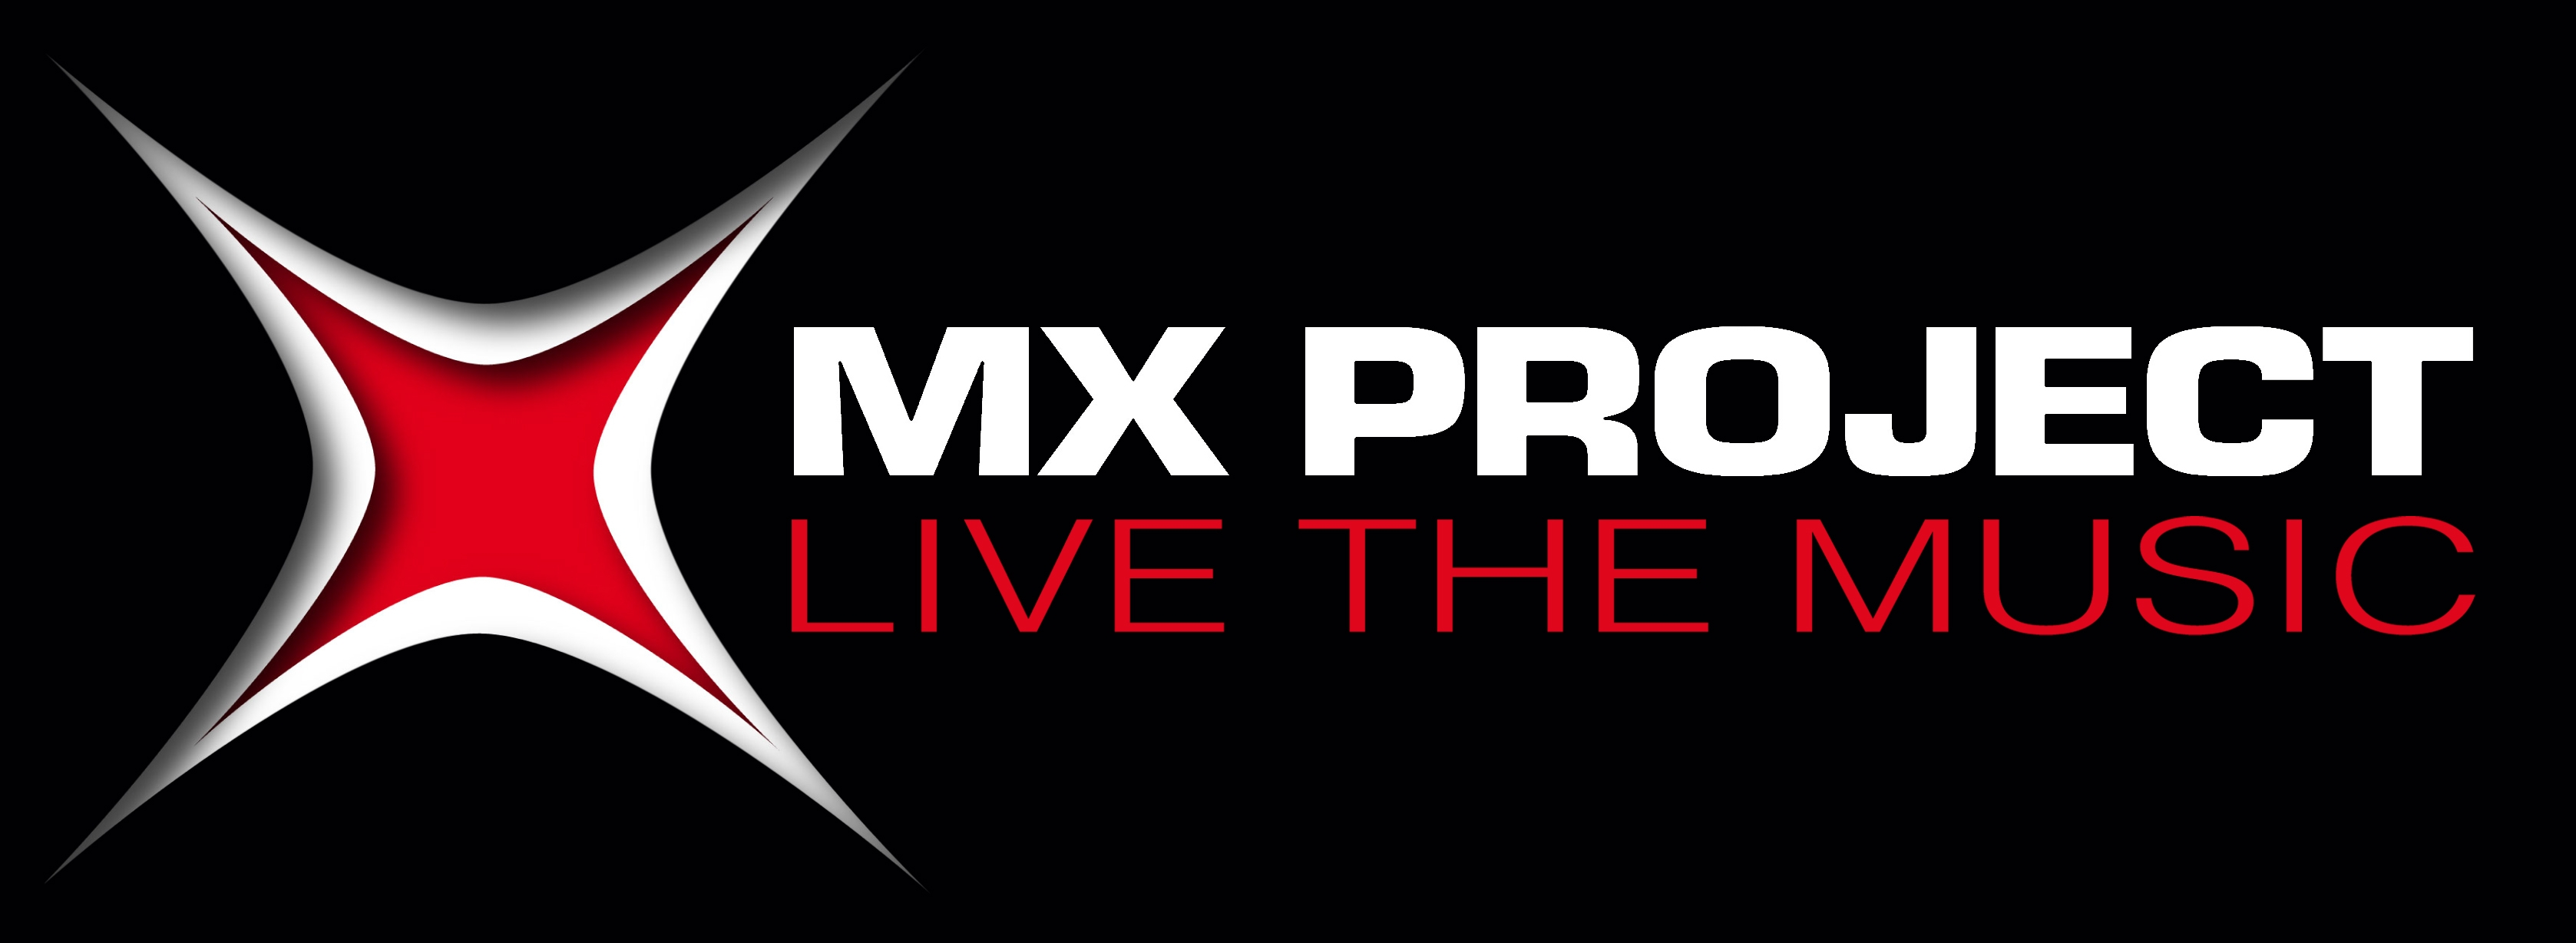 MX-Project-Logo_.jpg